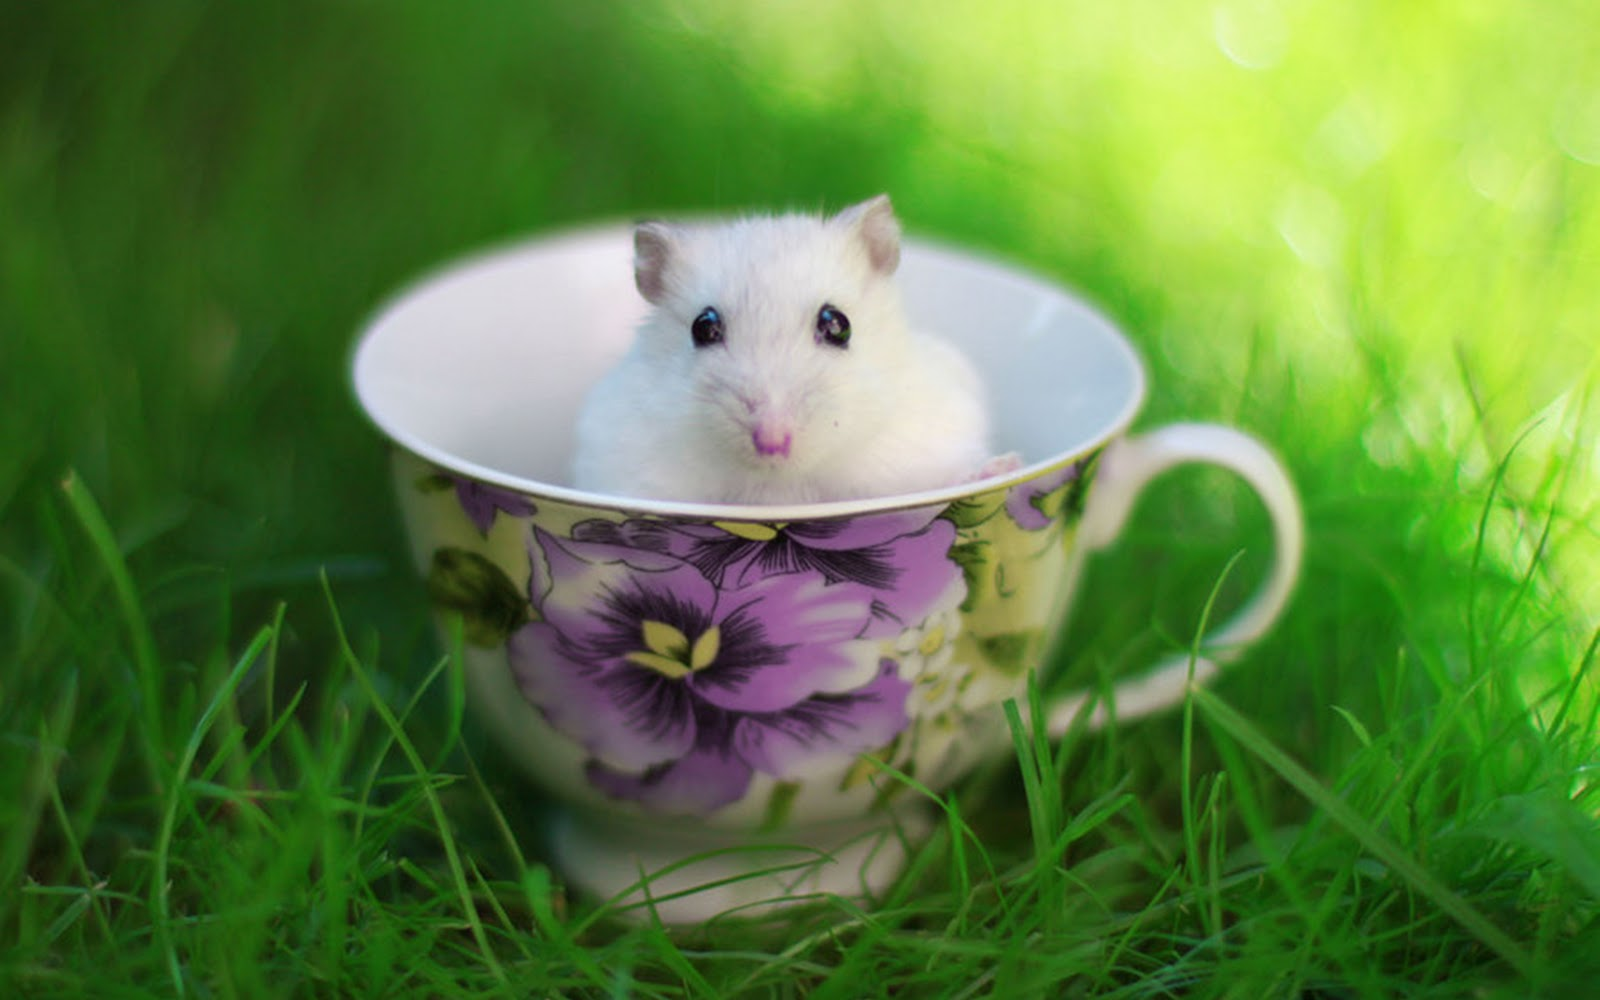 Cute Hamster in the Cup Wallpaper Wallpaper ME 1600x1000